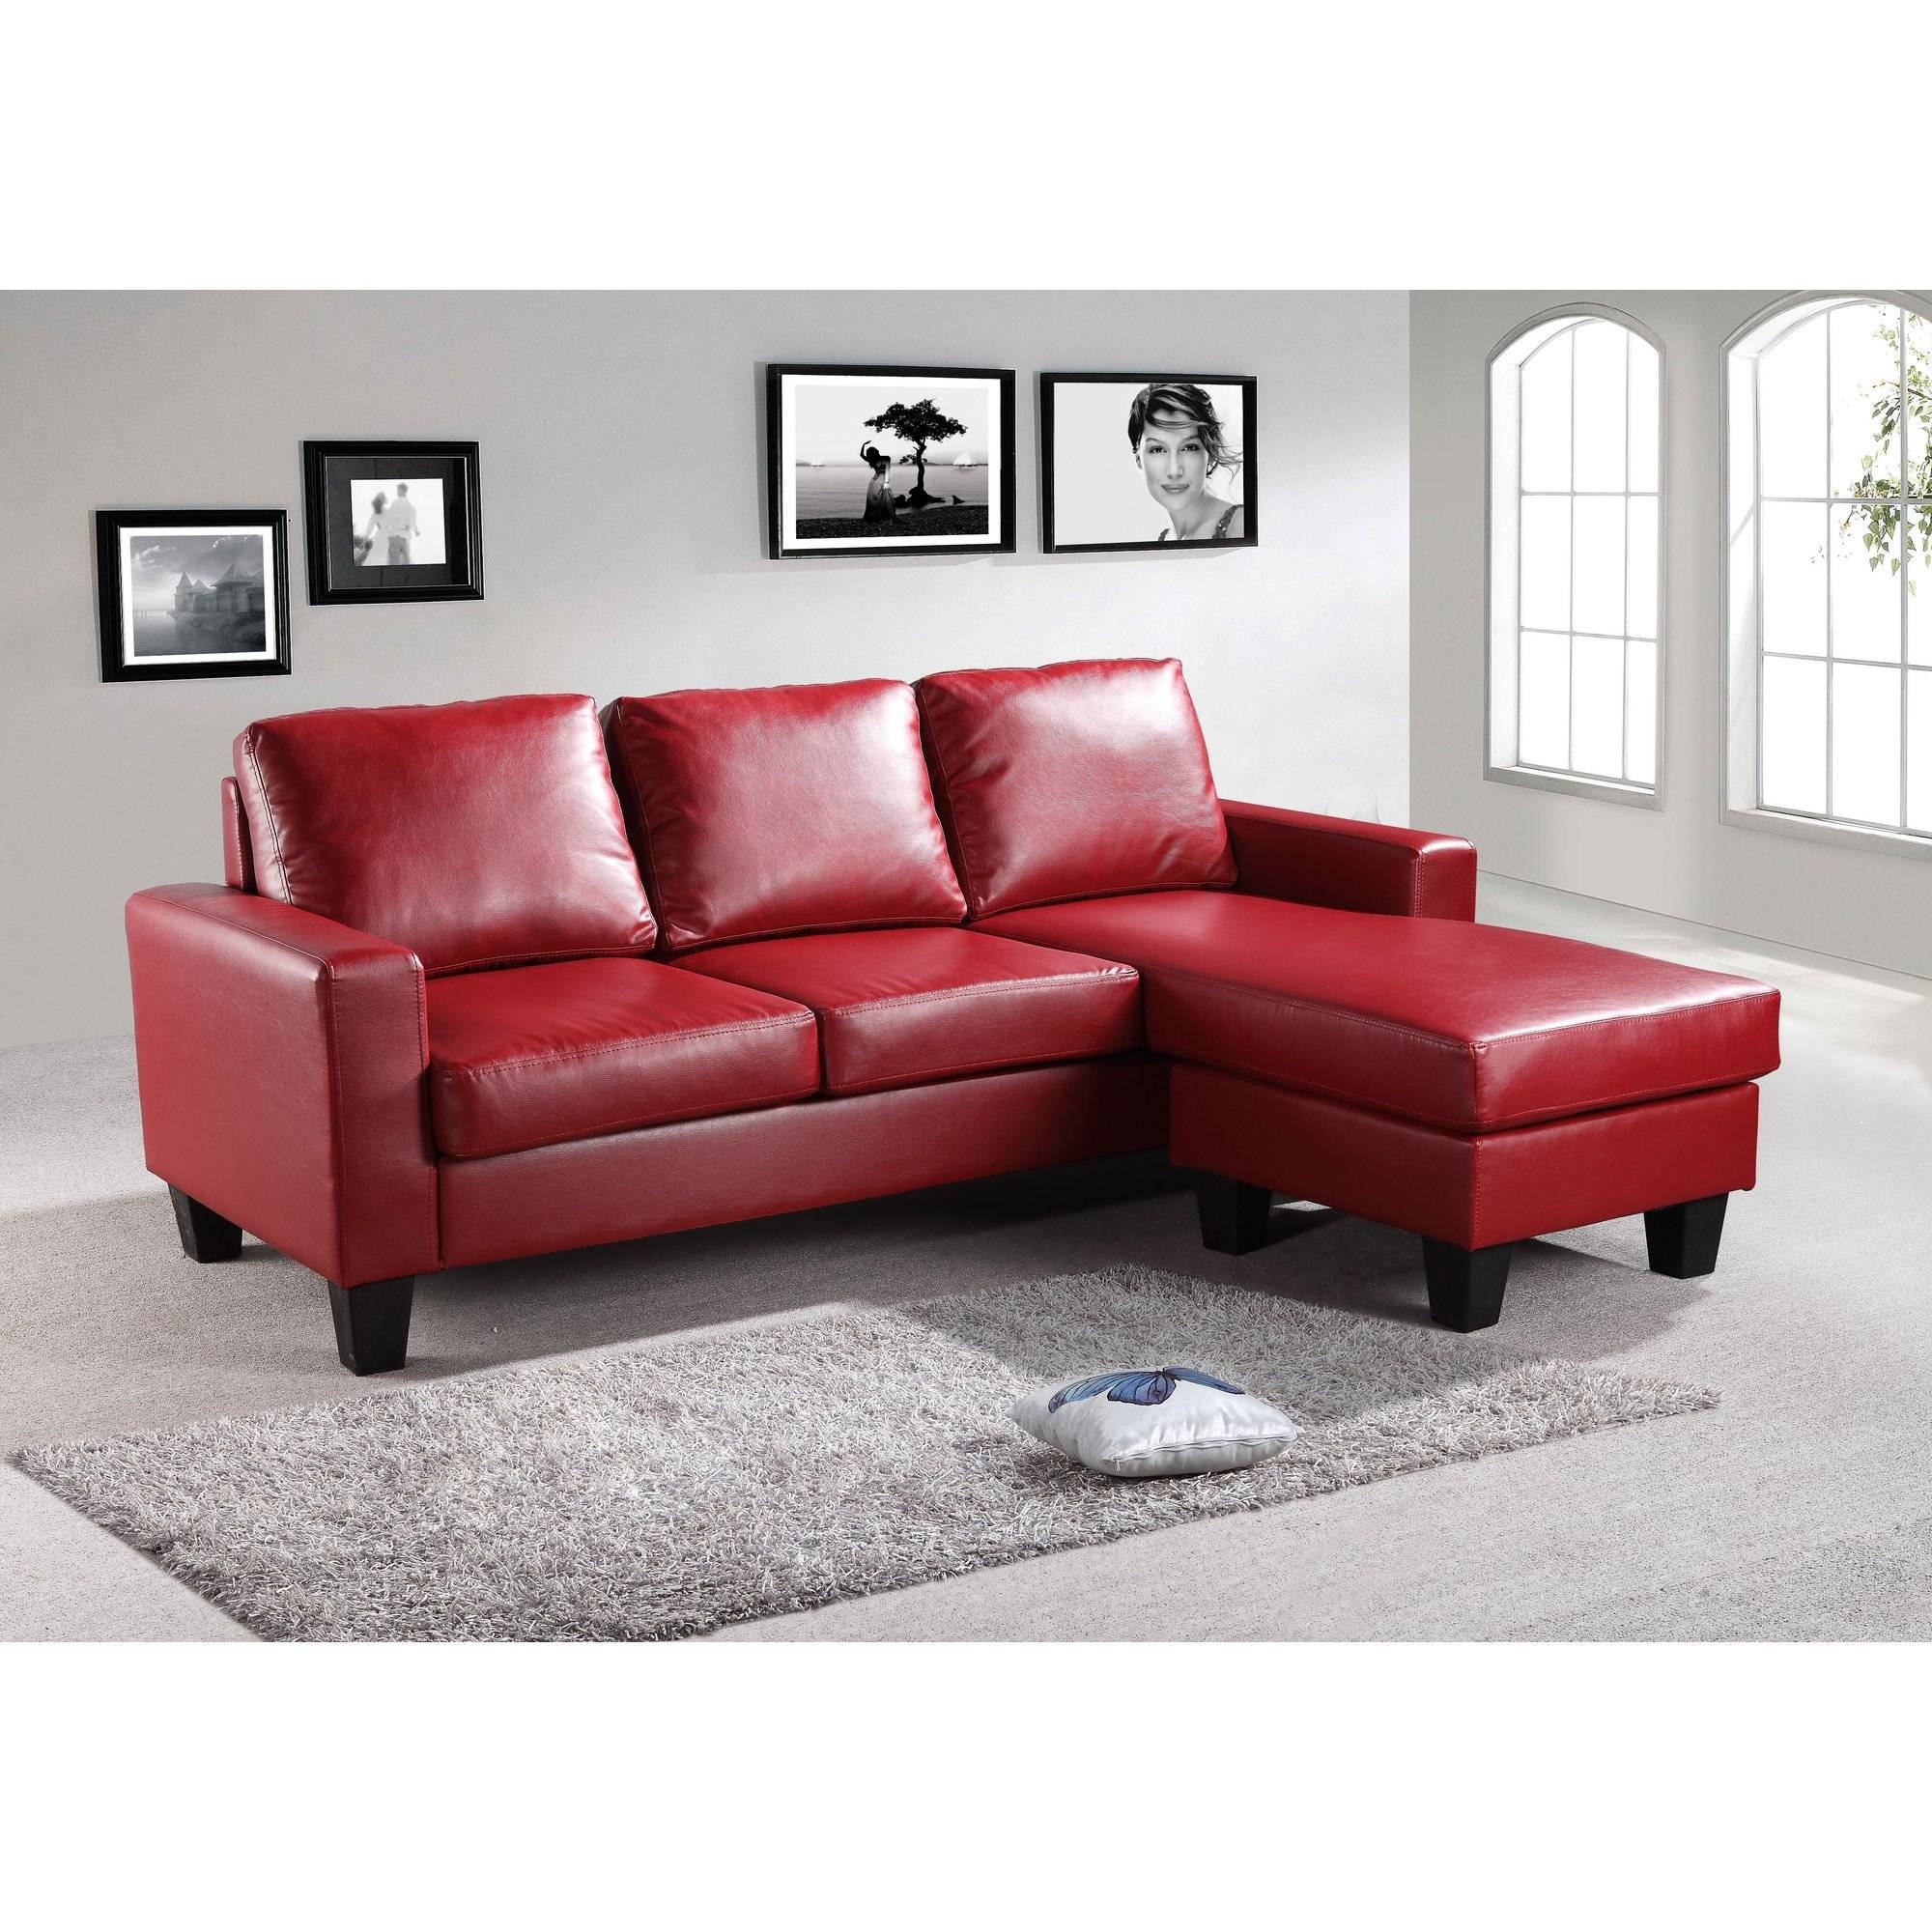 Jedd Fabric Reclining Sectional Sofa ~ Instasofa regarding Jedd Fabric Reclining Sectional Sofa (Image 23 of 30)